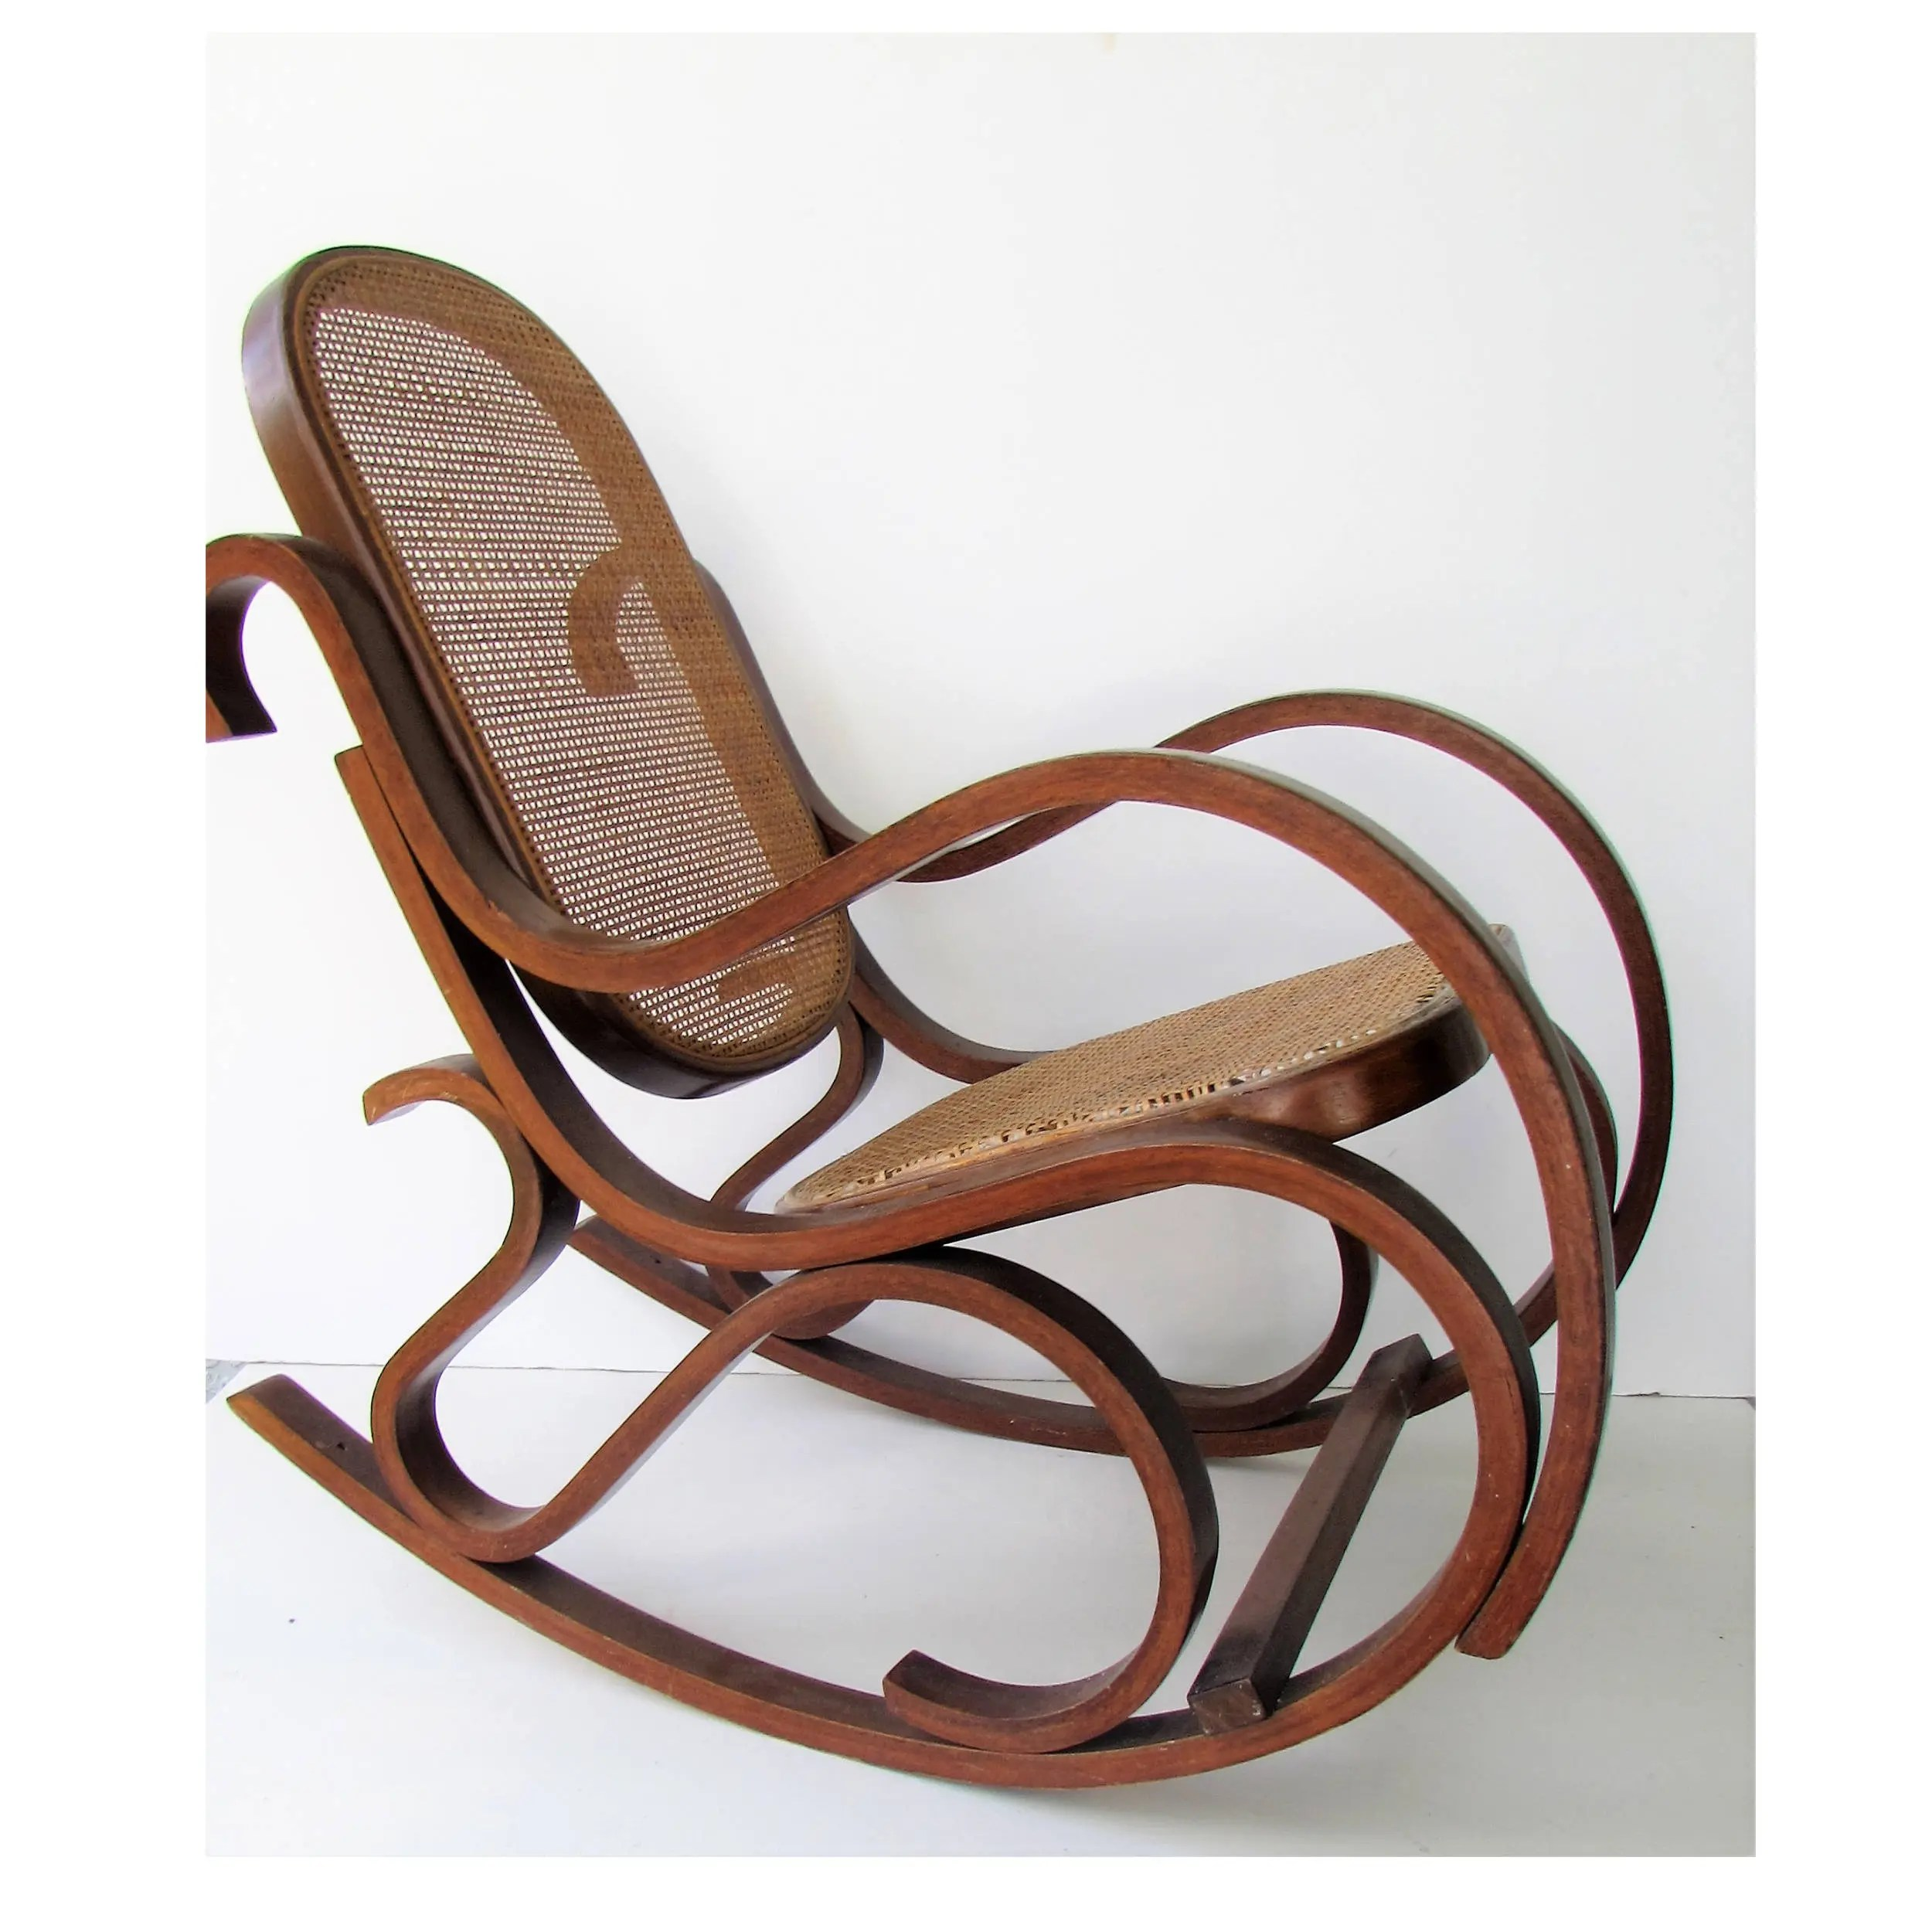 rocking chair cane koken barber age mid century modern bentwood child s etsy 50